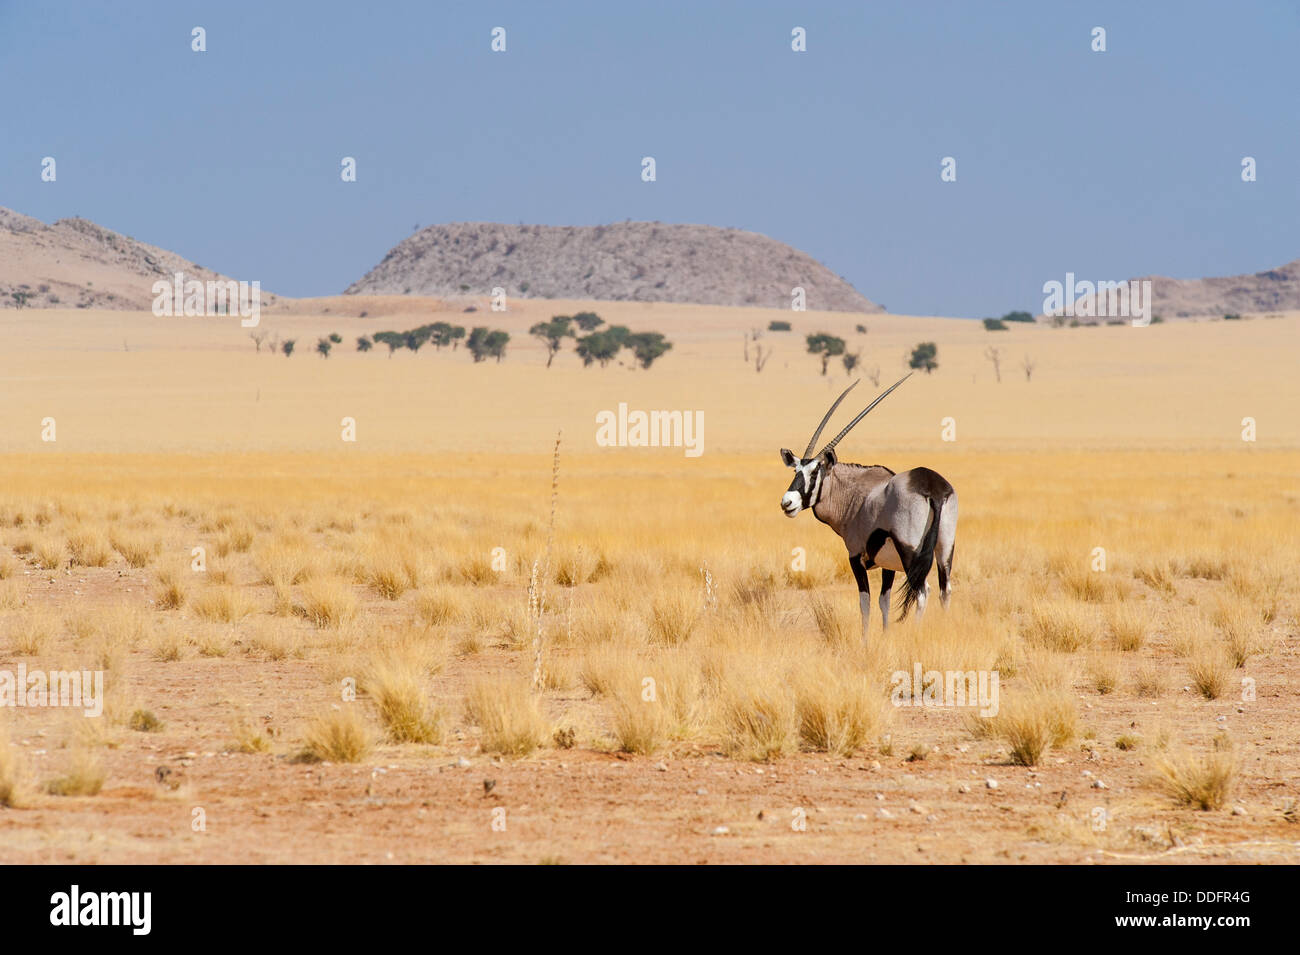 Gemsbok (Oryx gazella) standing on a open dry grass plain, Namibia - Stock Image